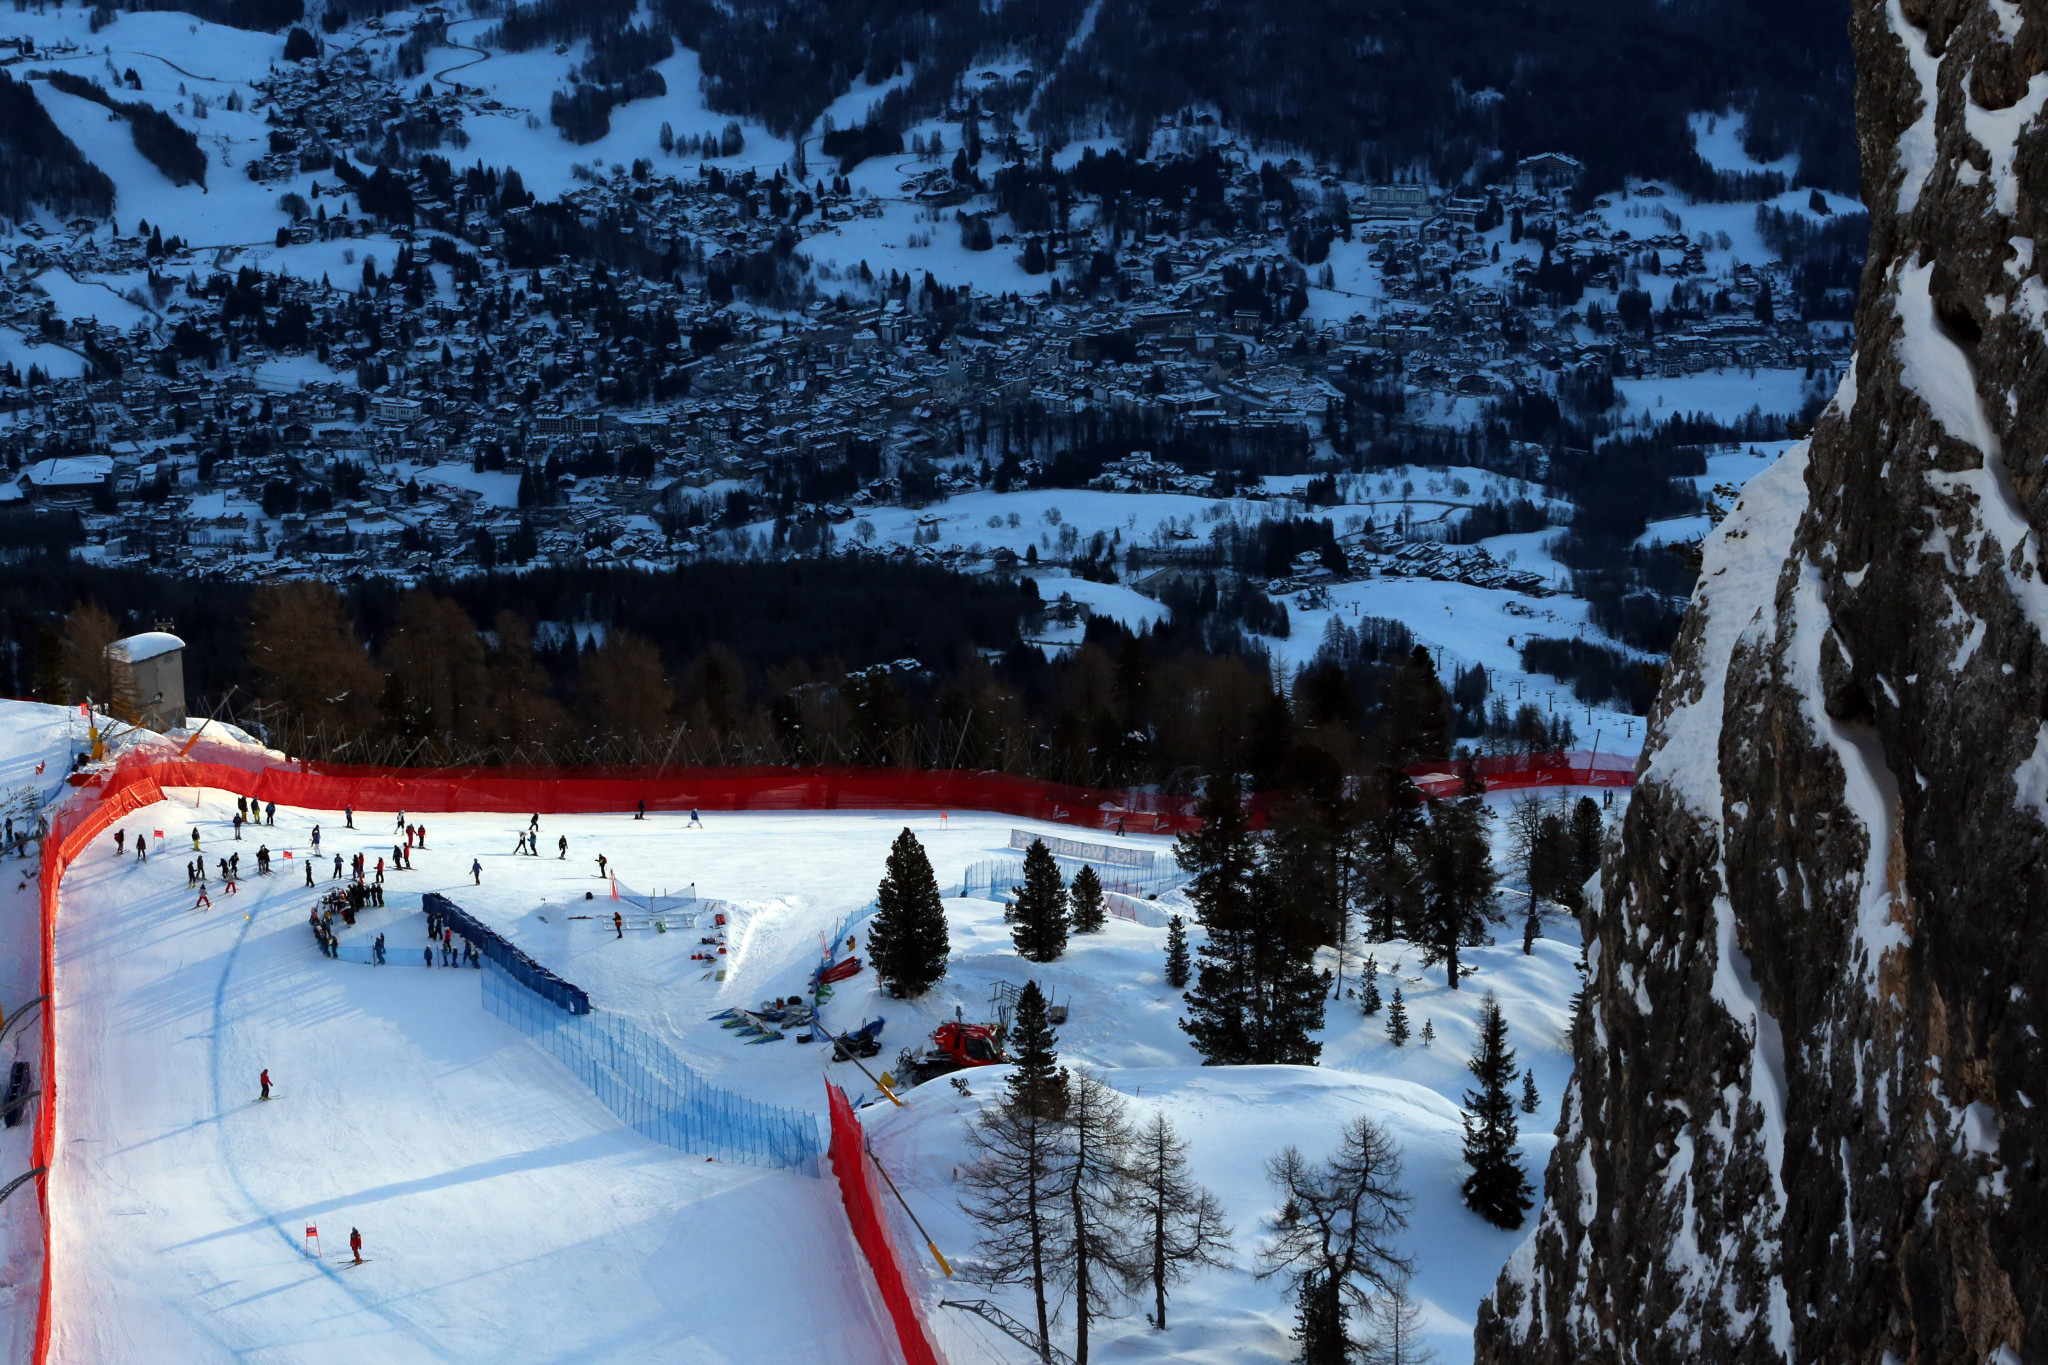 Ski resort Cortina d'Ampezzo is hoping to jointly stage the 2026 Winter Olympic and Paralympic Games with Milan ©Getty Images